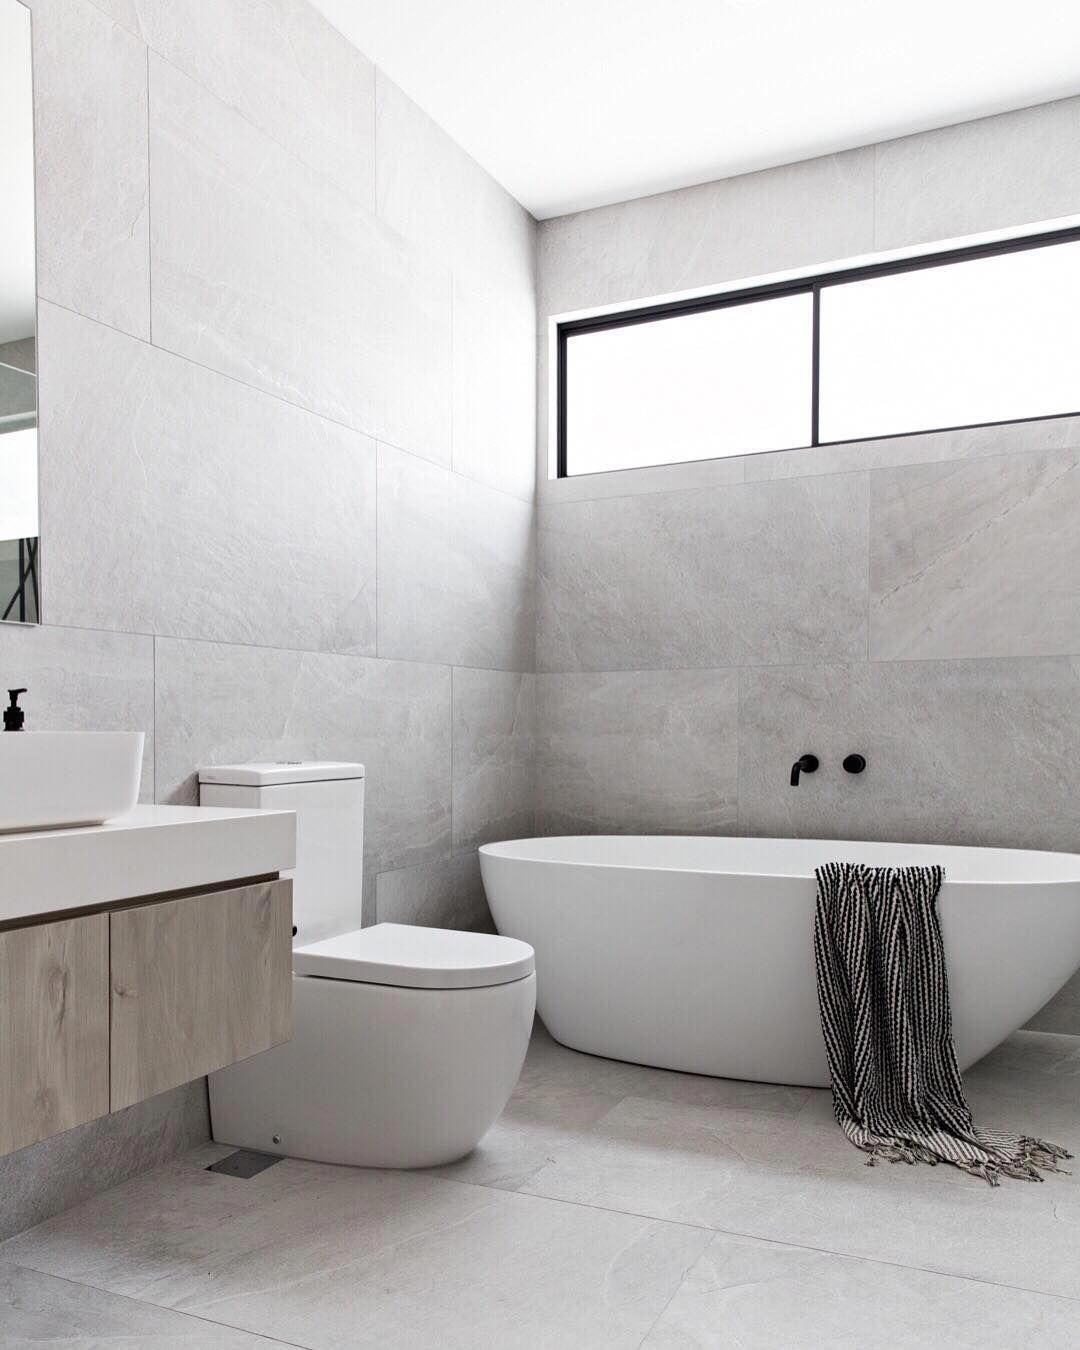 Design Styling Reno Tips On Instagram Z S Design Crush Large Format Tiles If There S One Thing Modern Bathroom Minimalist Bathroom Small Bathroom